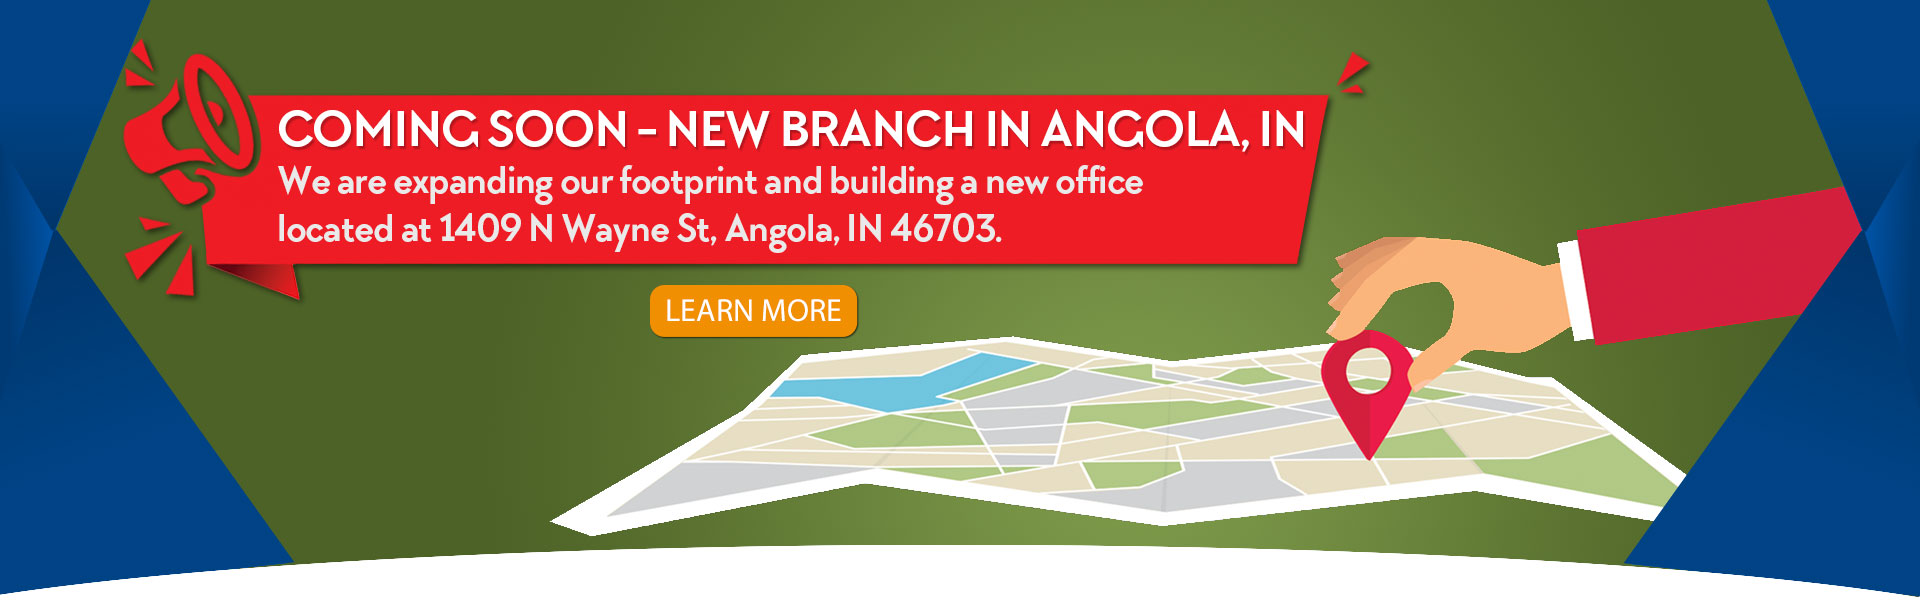 Angola Branch Coming Soon